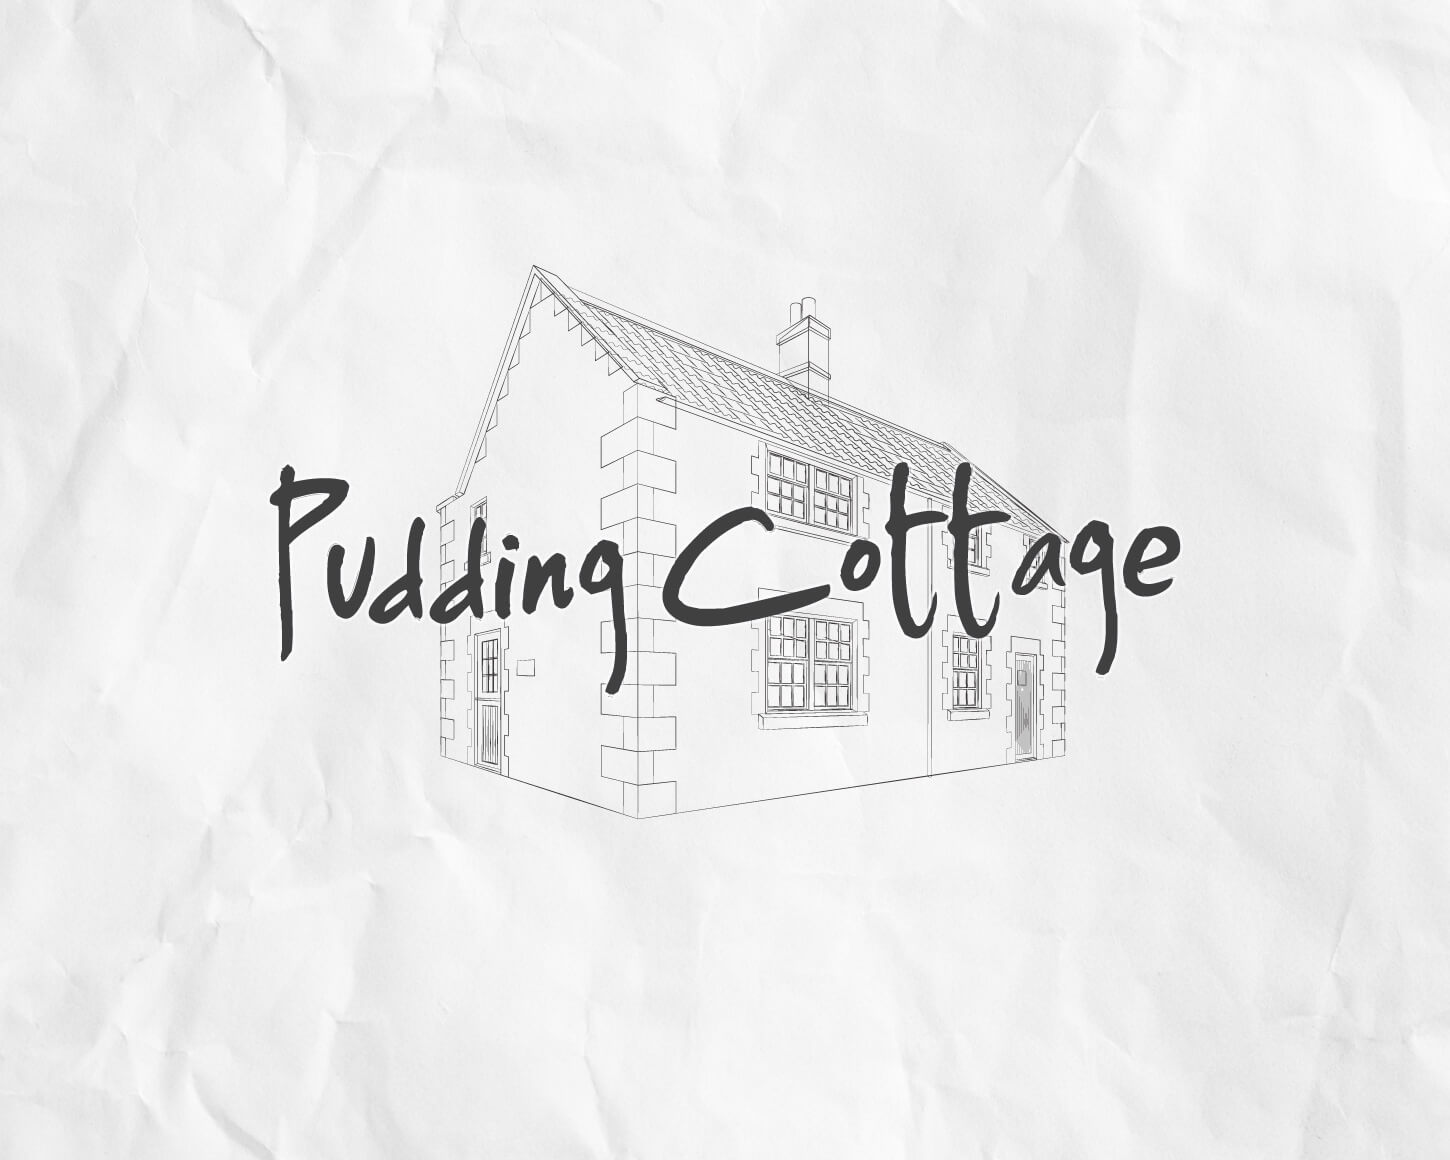 Pudding Cottage branding